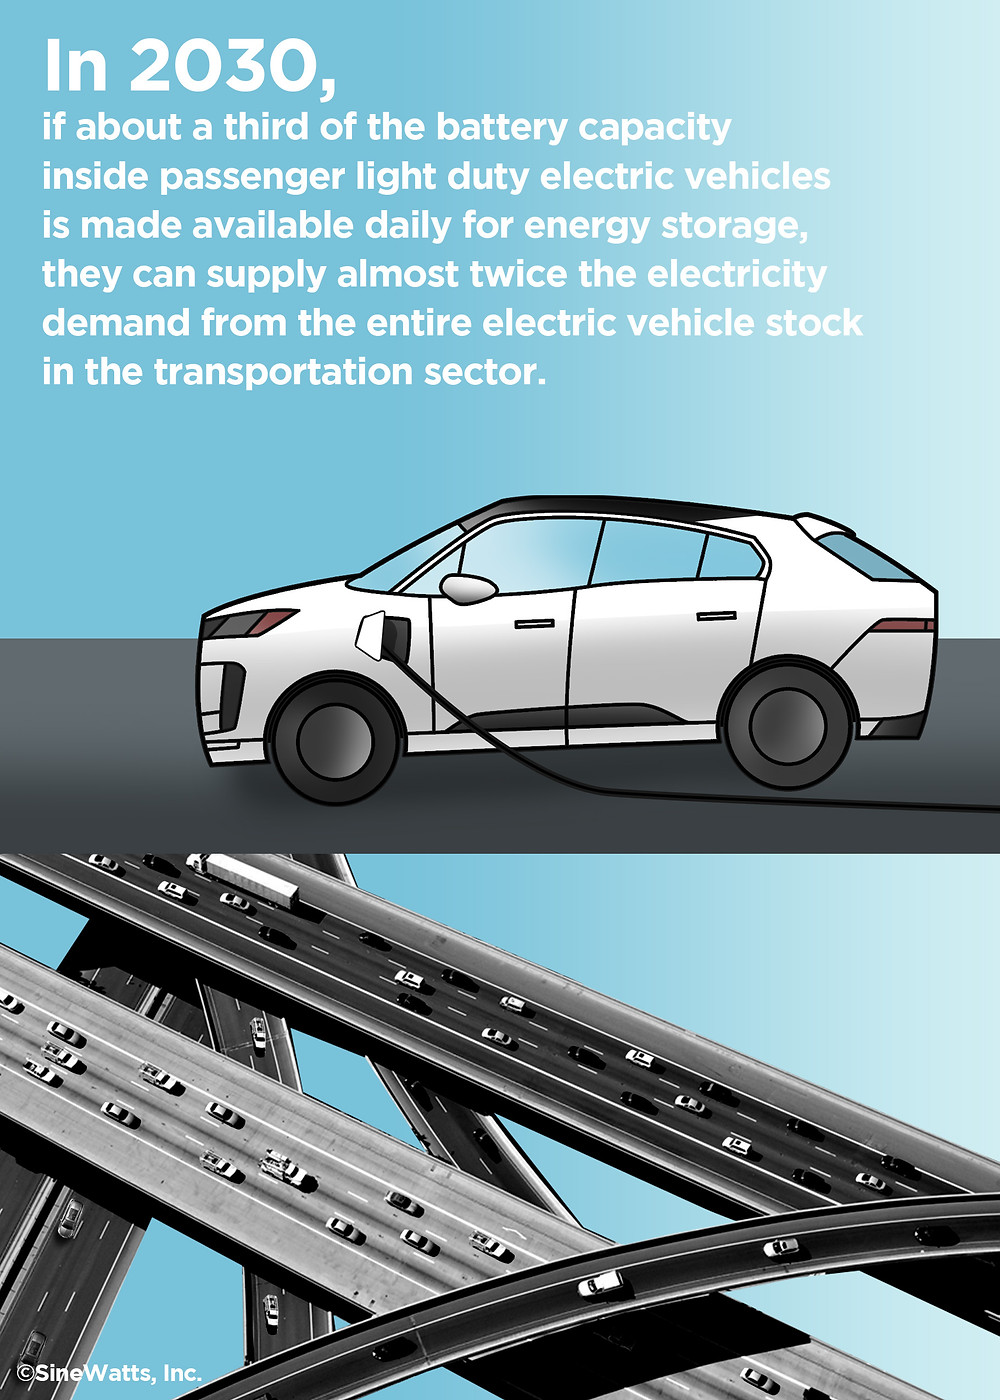 Electric car with image of highway and vehicles